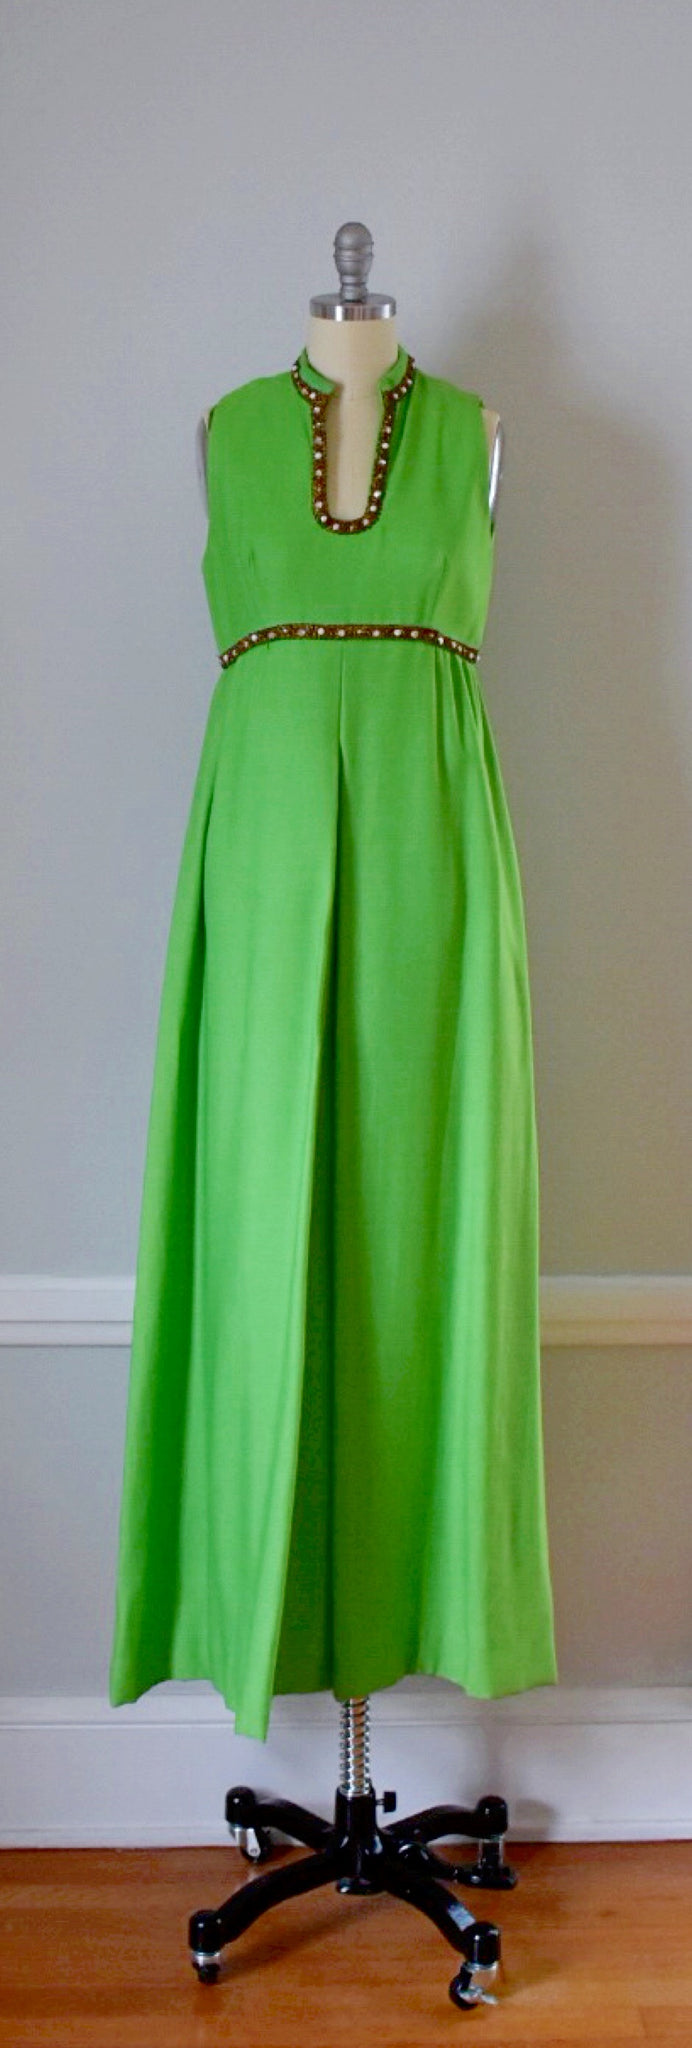 60s Vintage Floor Length Maxi Dress